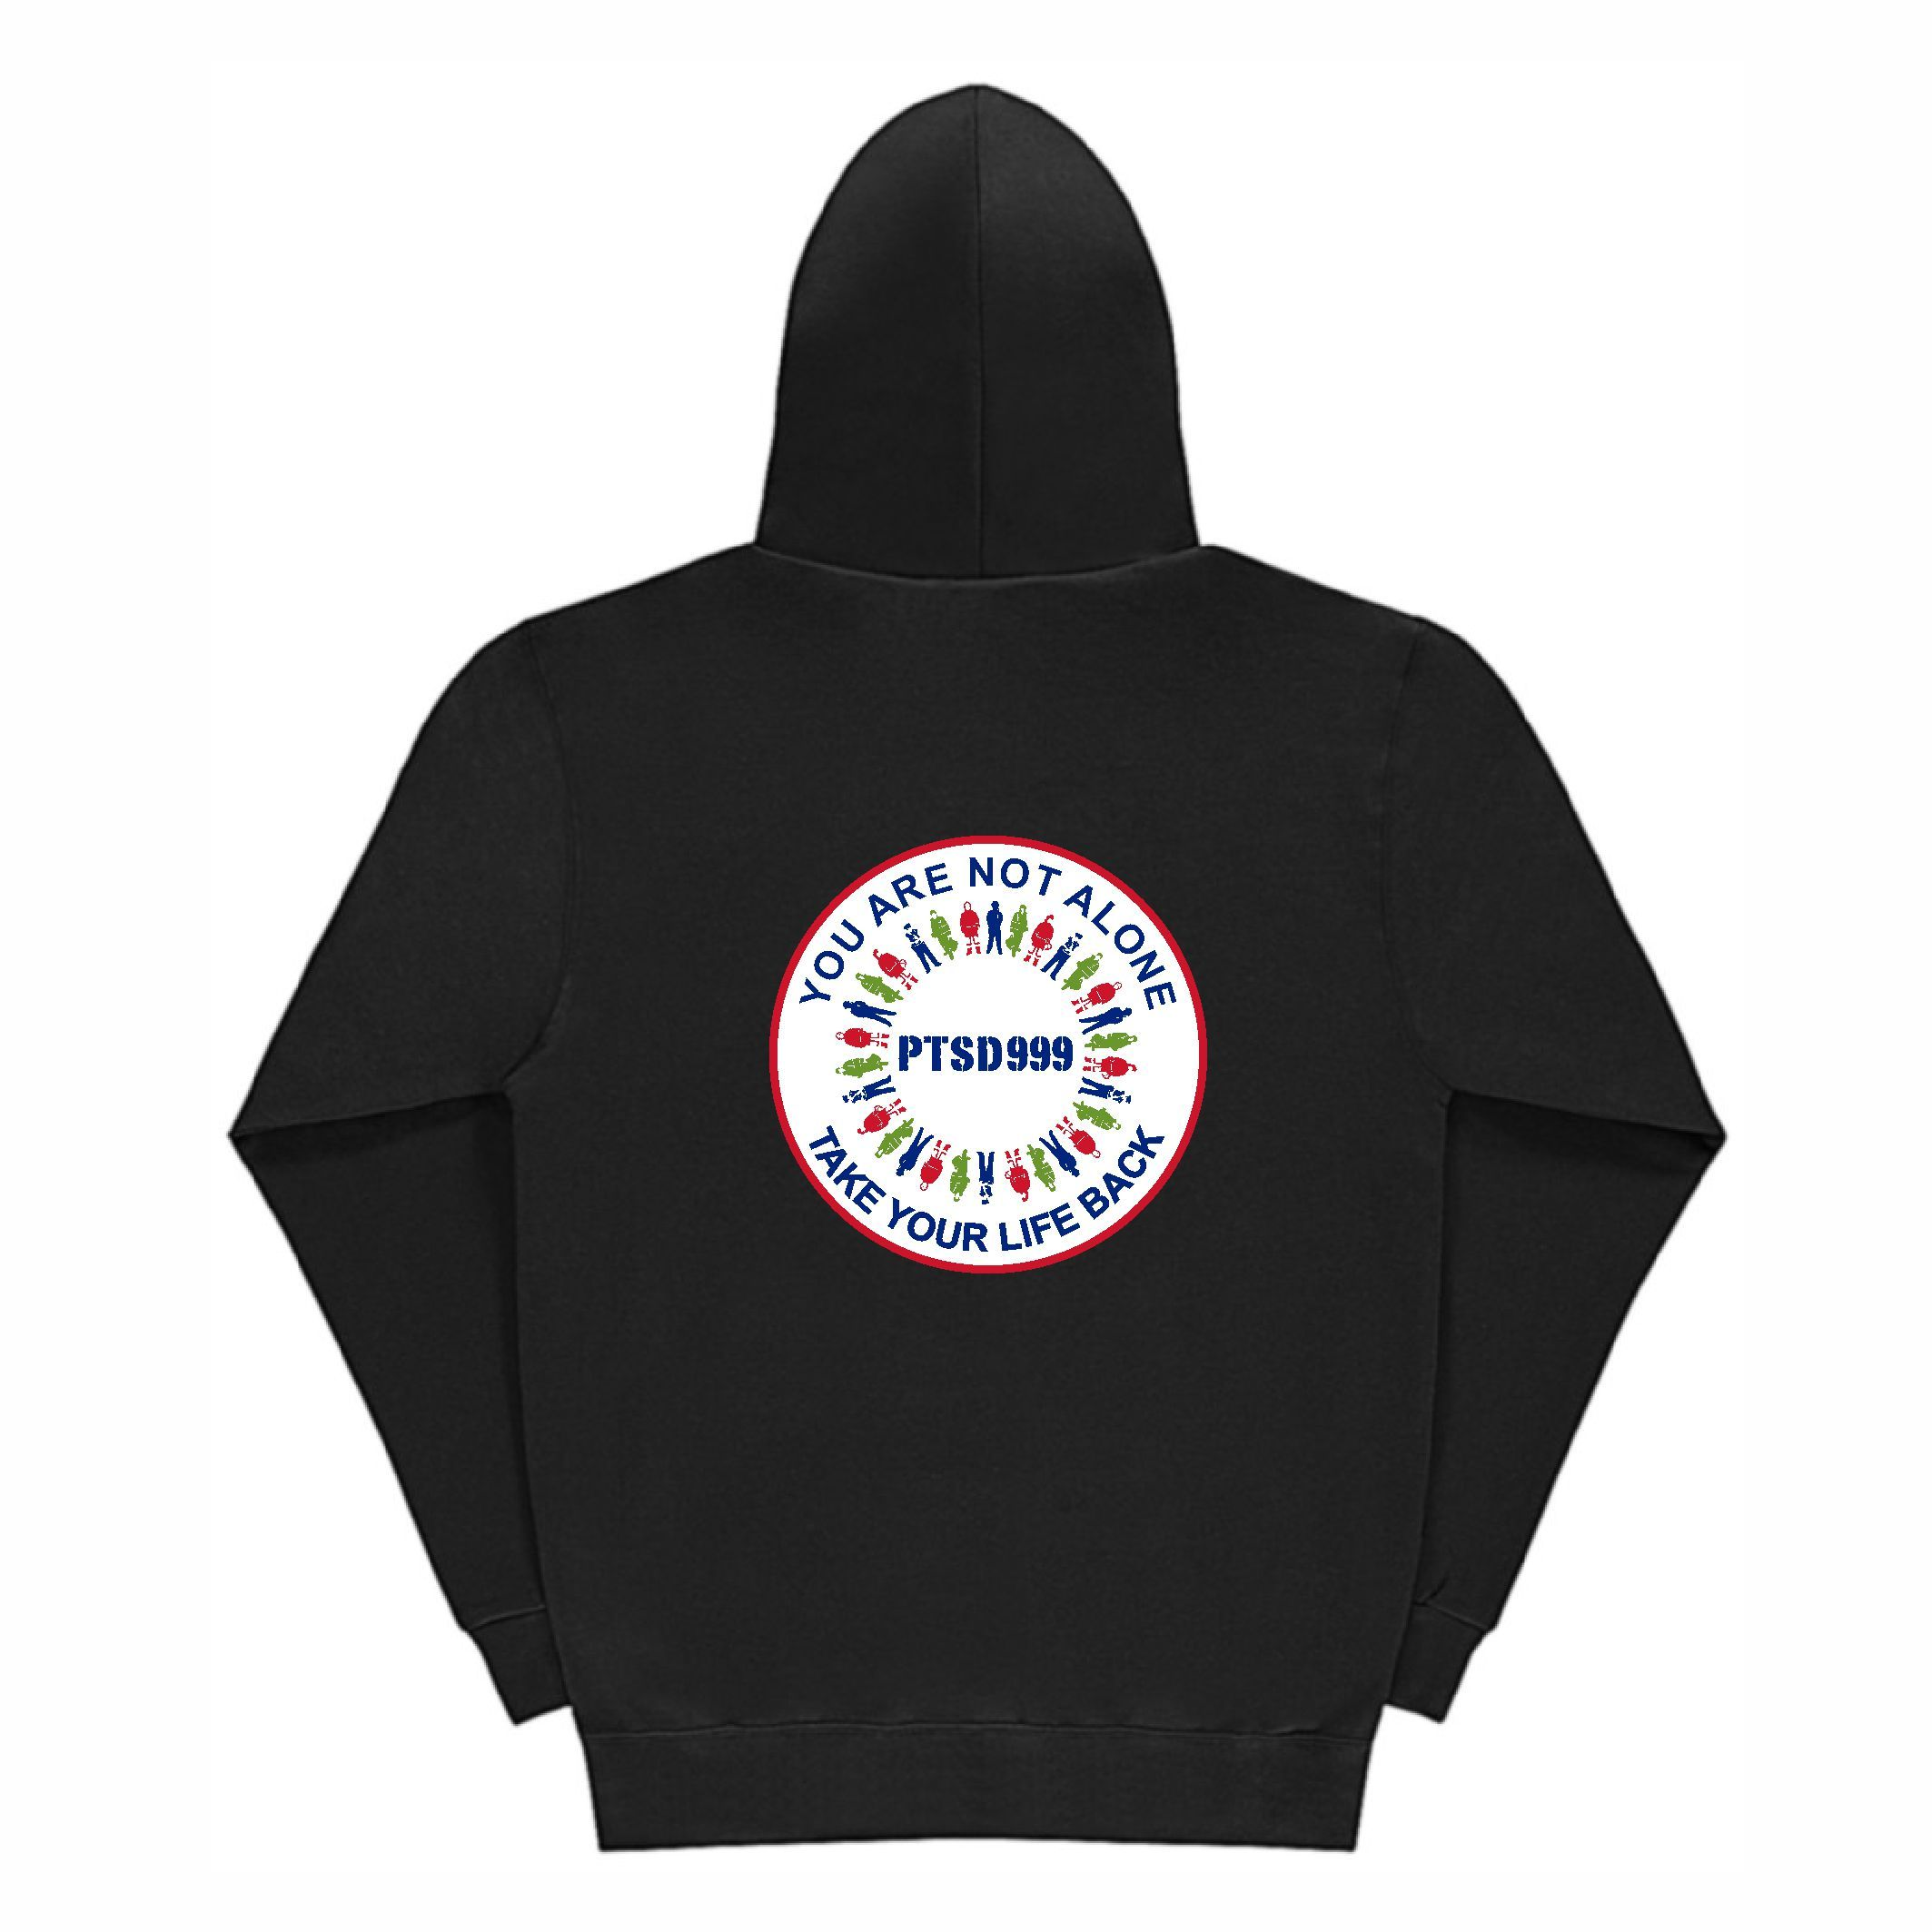 PTSD999- 'You Are Not Alone' Ladies Hoodie